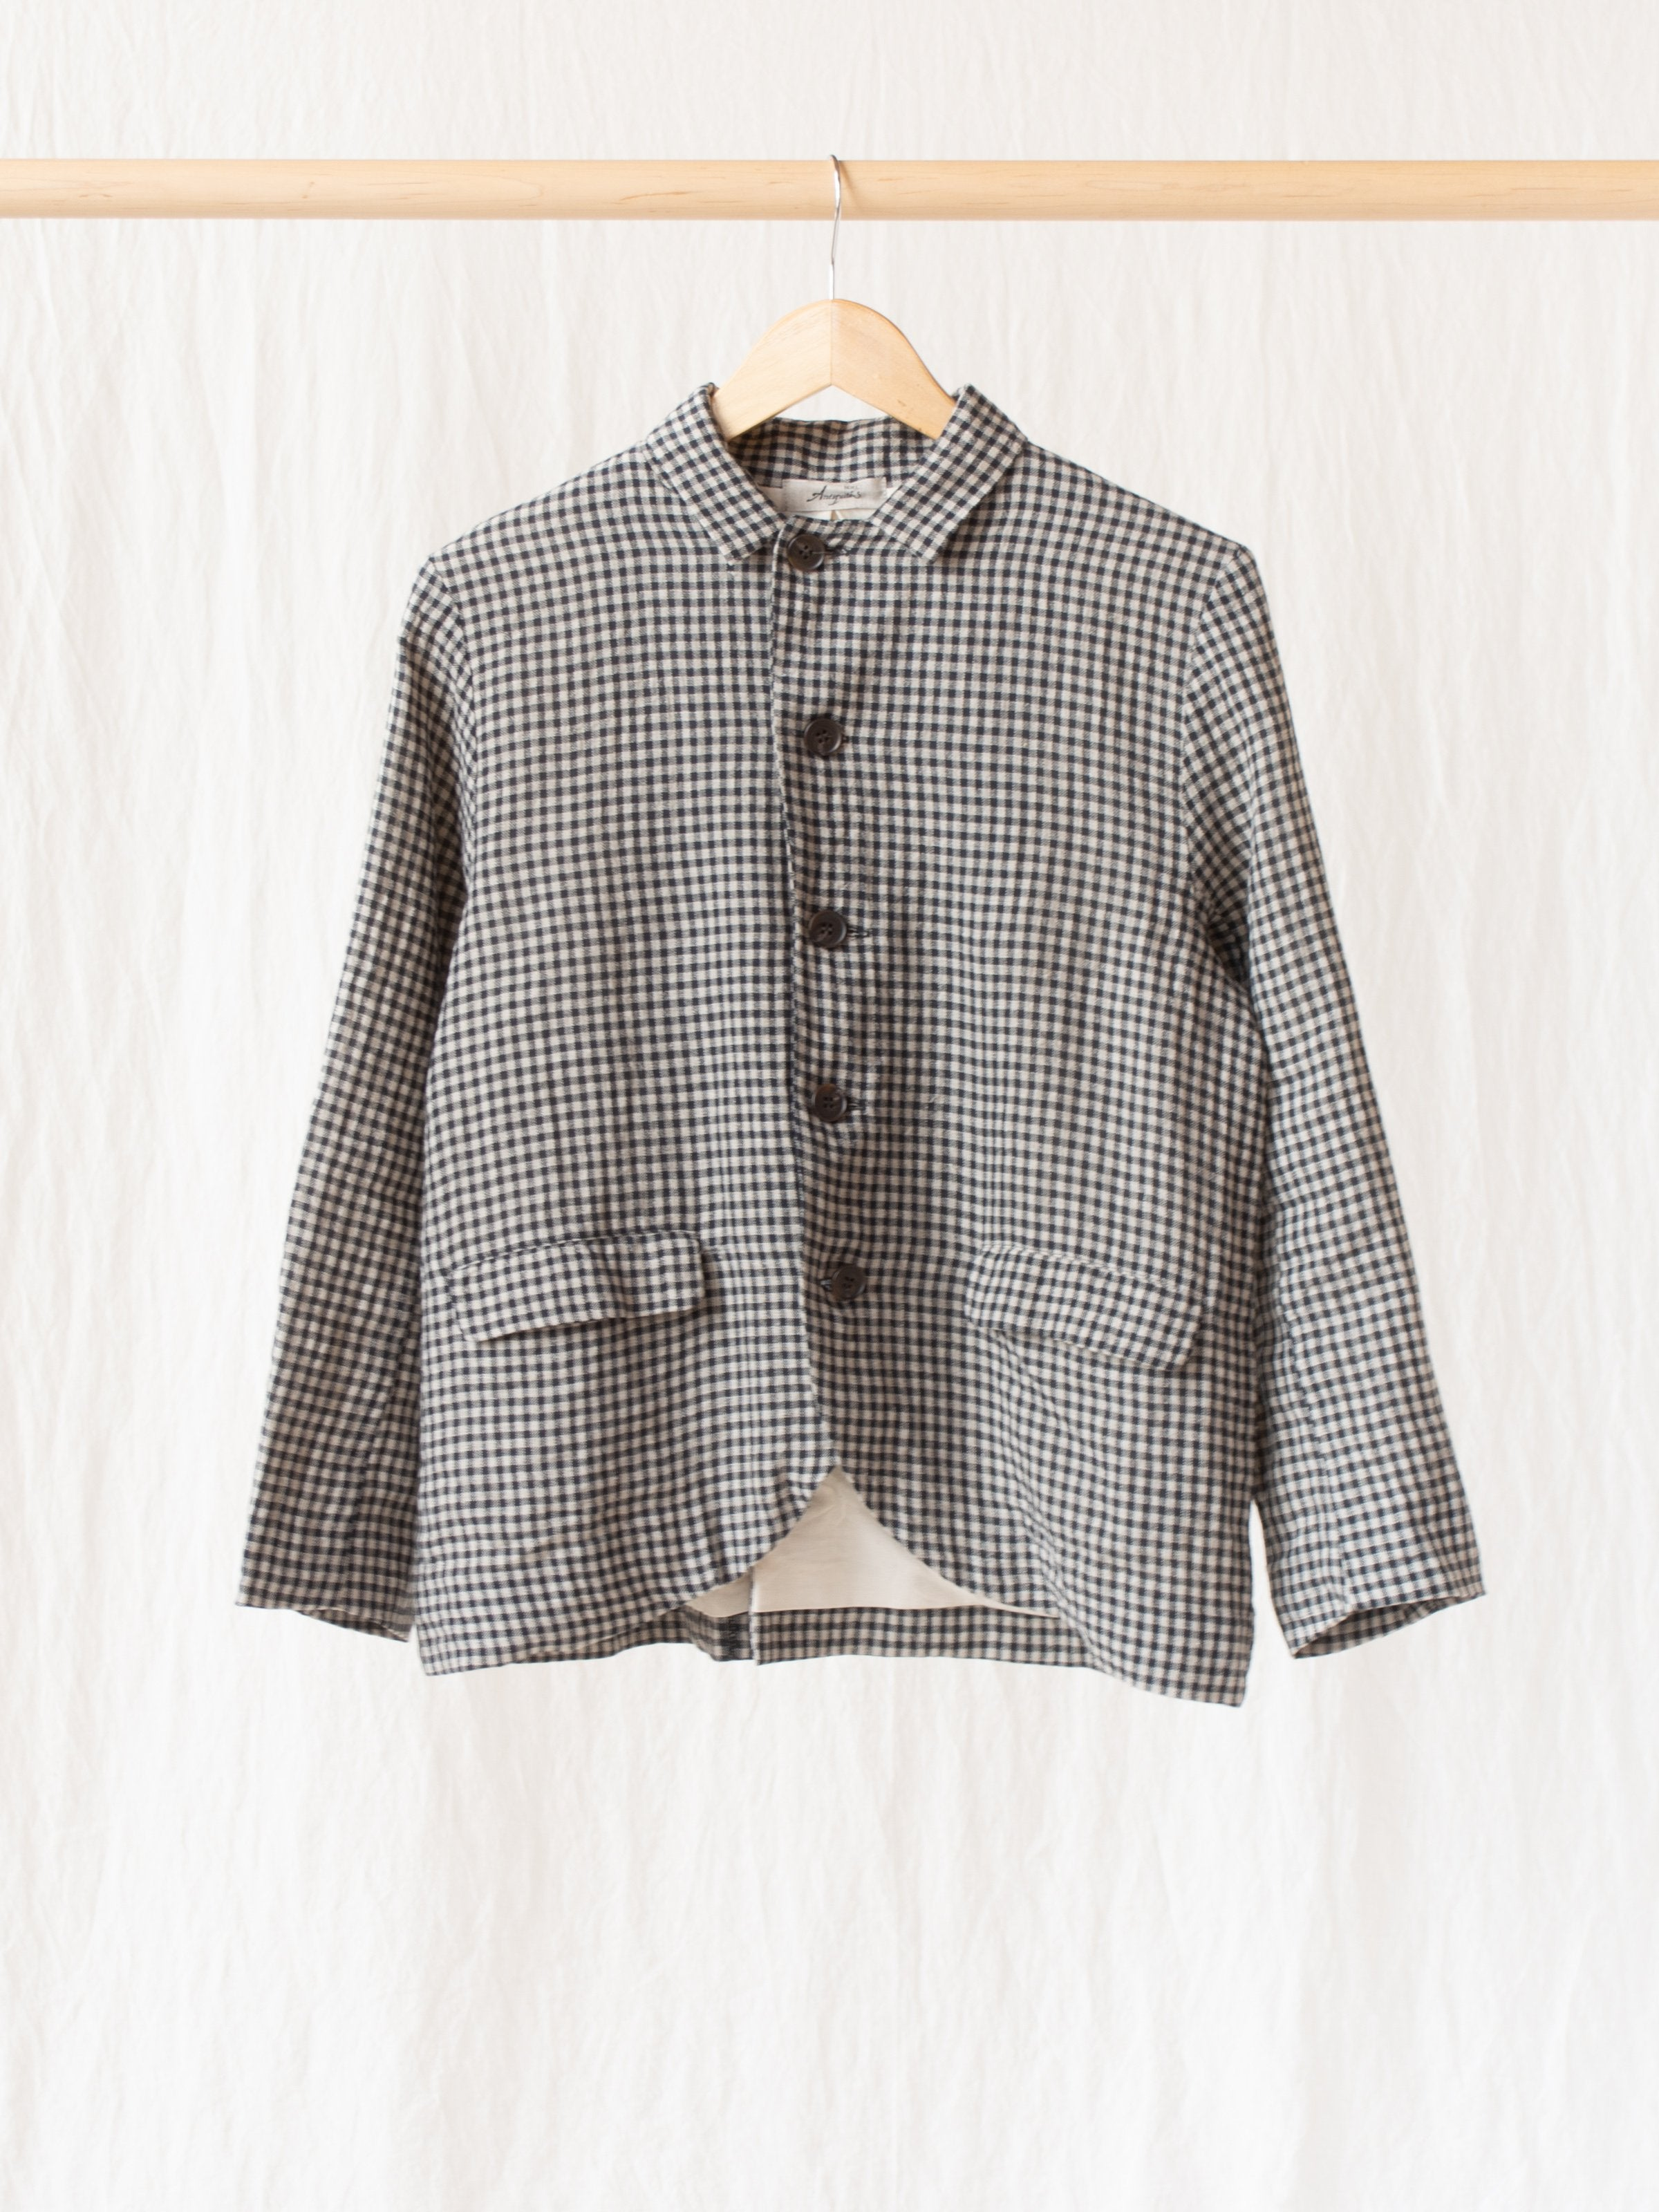 Namu Shop - Ichi Antiquites Co/Li Gingham Jacket - Black